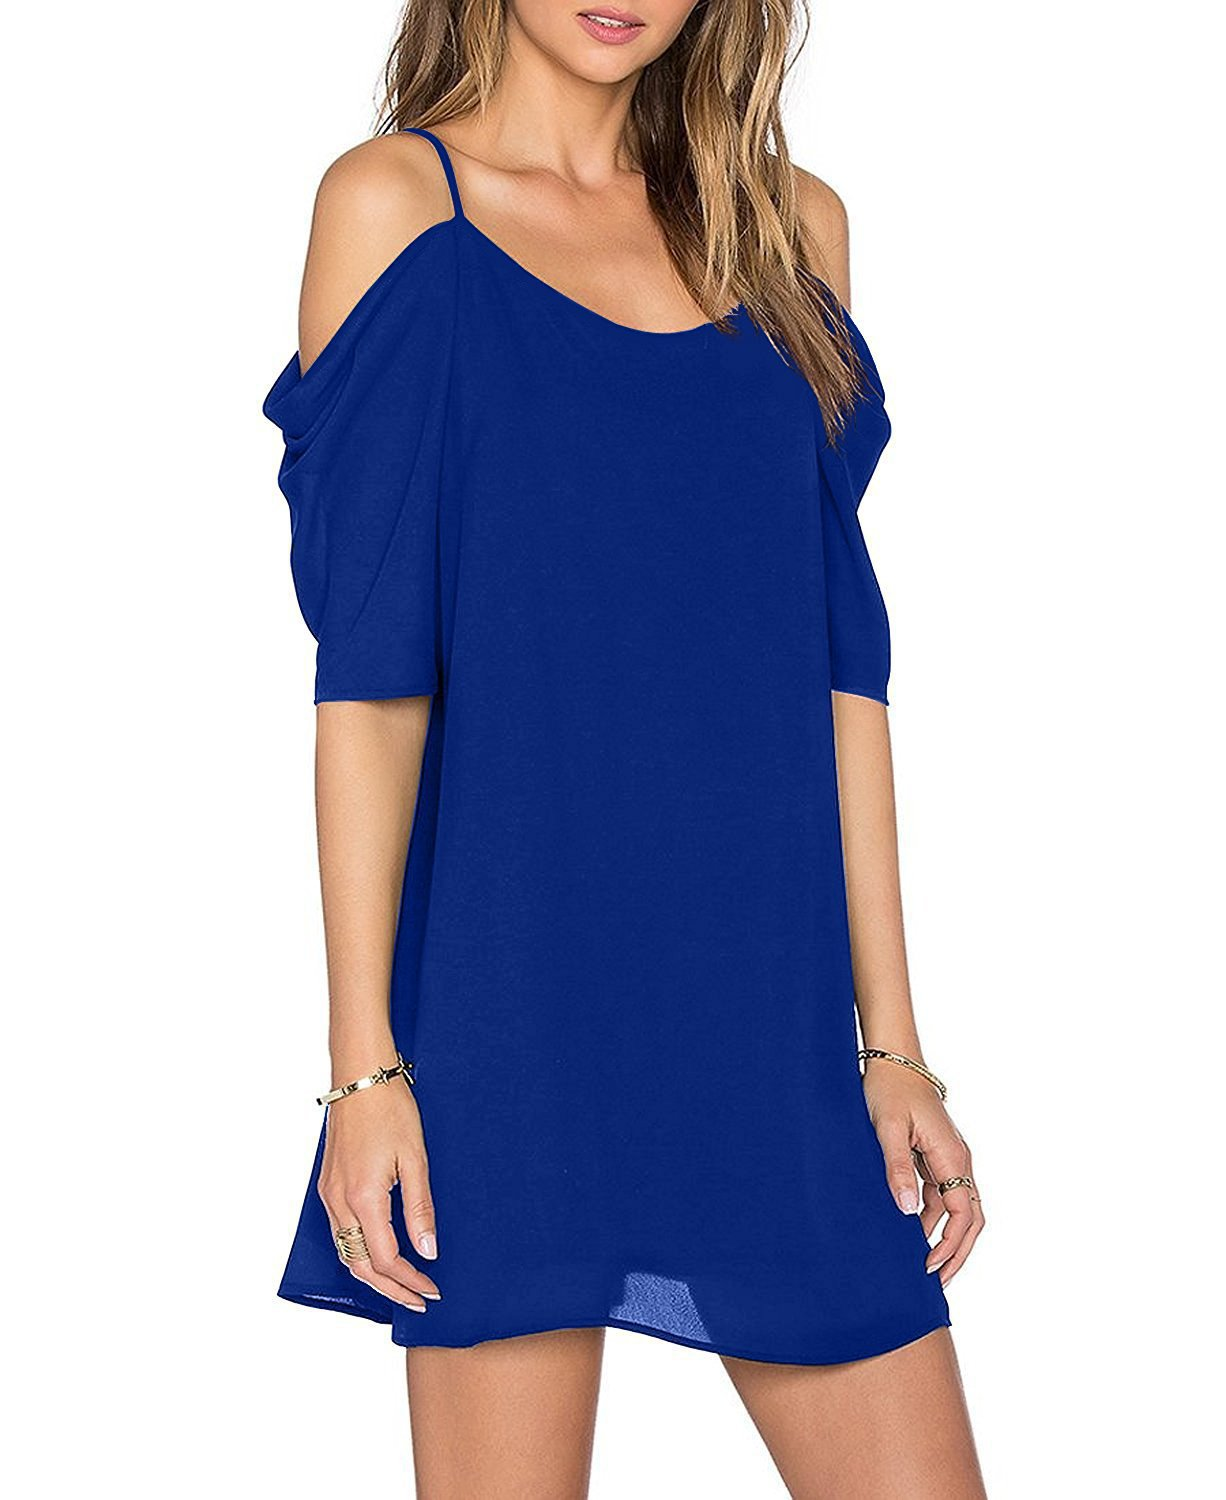 Plus Size <font><b>Dress</b></font> 6XL <font><b>Short</b></font>-sleeved Sling <font><b>Sexy</b></font> Loose Urban Casual Wine <font><b>Red</b></font> Army Green Blue Blue Navy Club <font><b>Dress</b></font> image